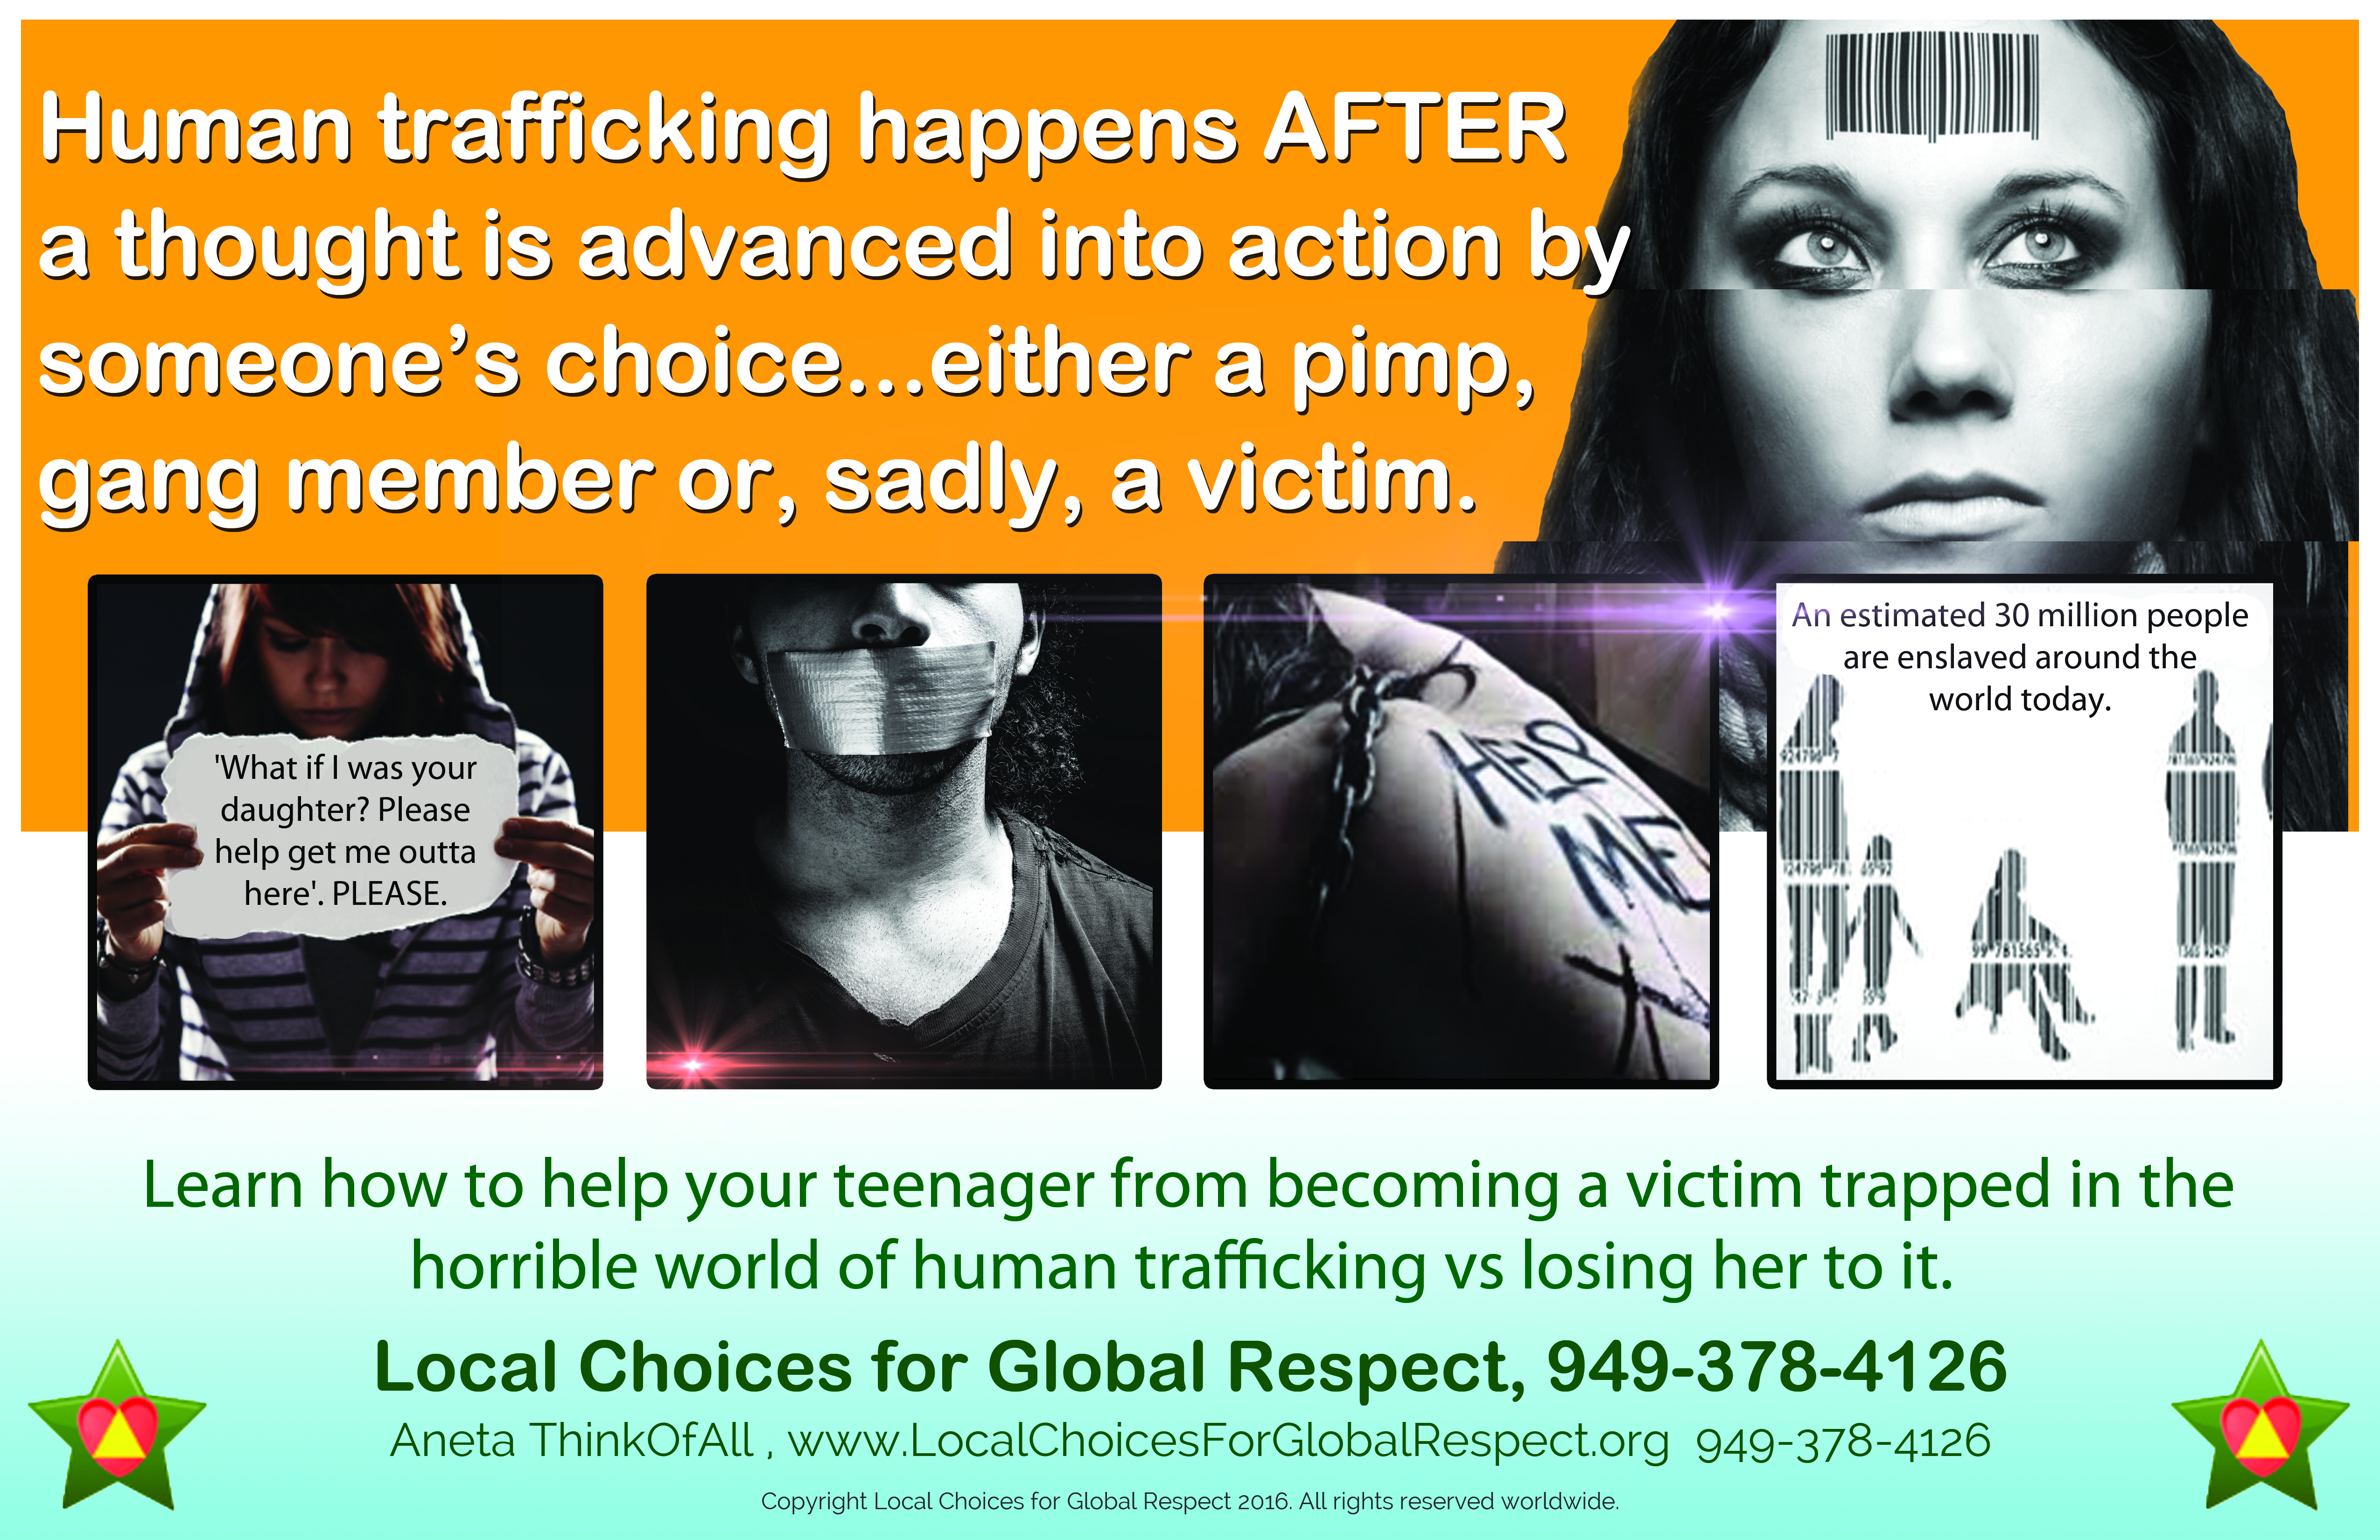 Human Trafficking Poster - Local Choices for Global Respect